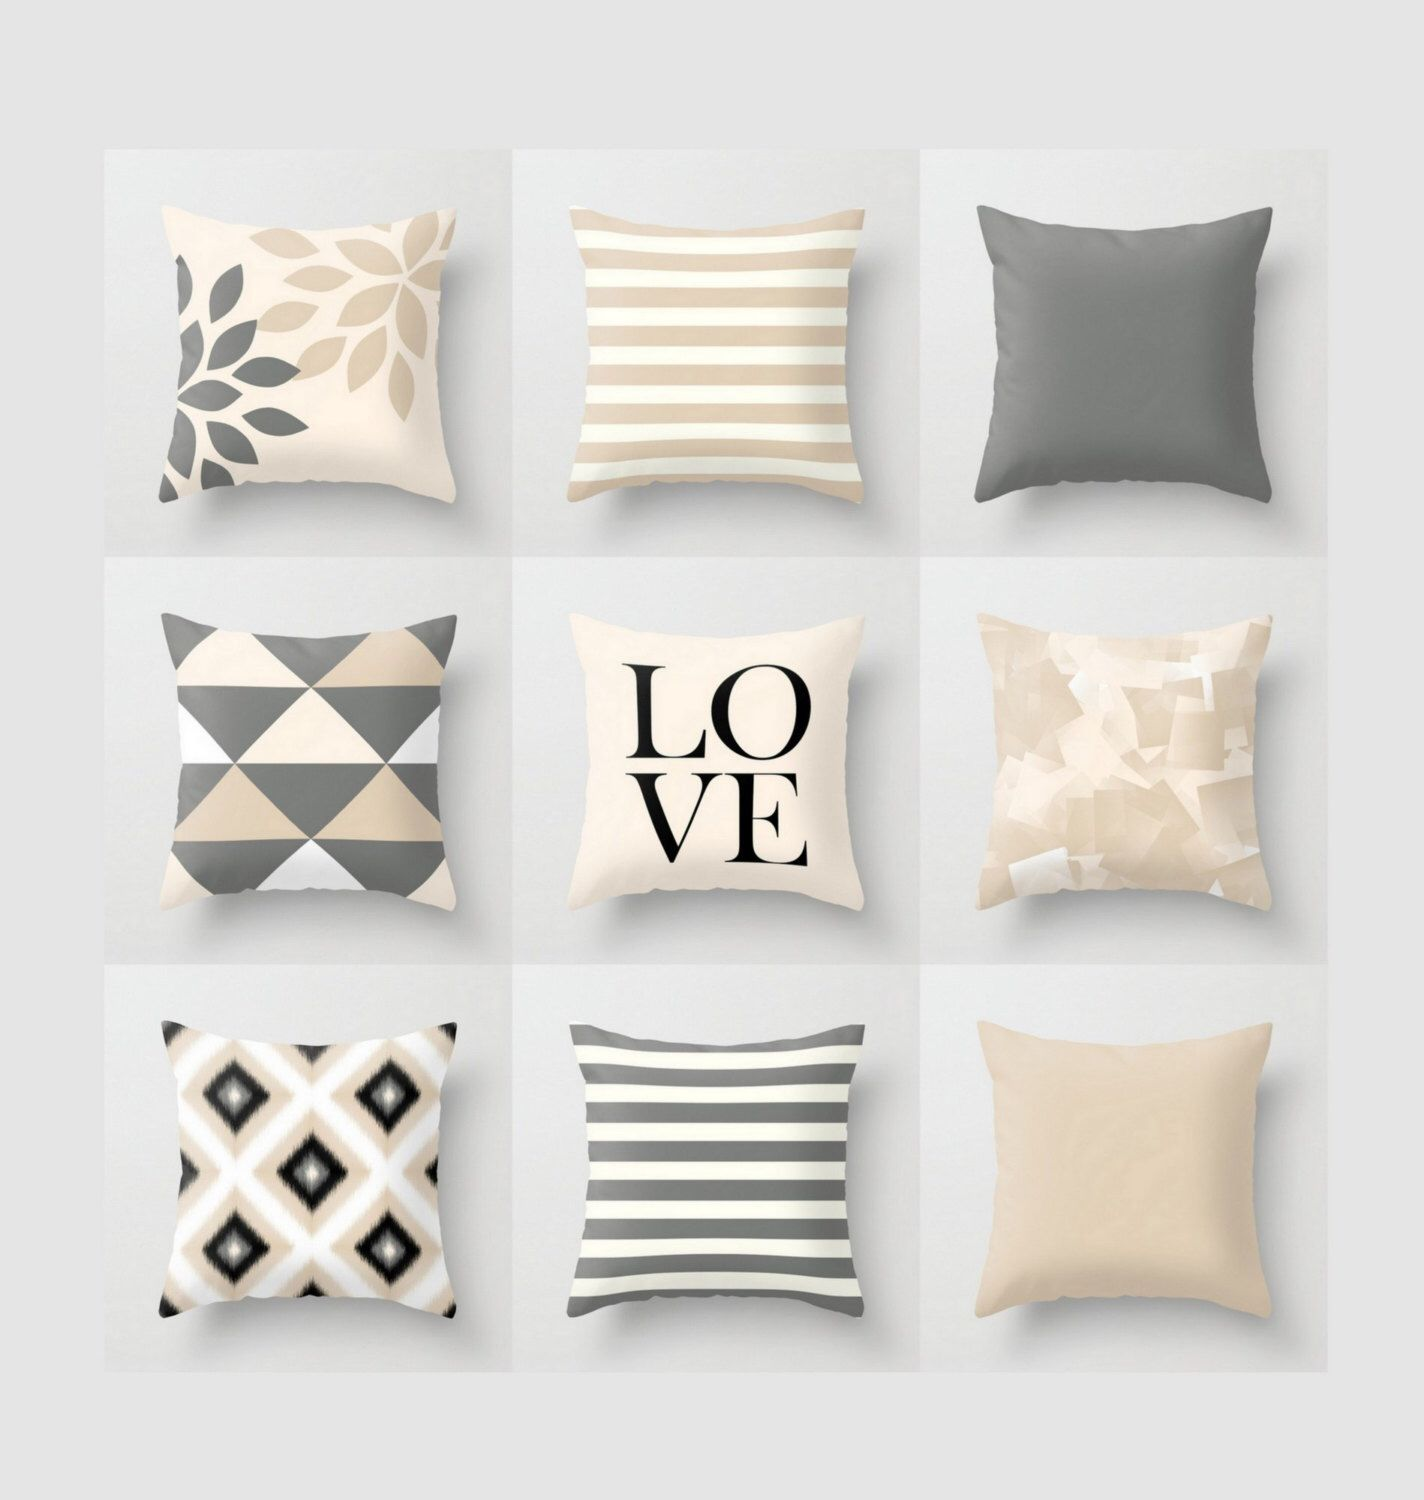 Neutral Throw Pillow Geometric Home Decor Grey Beige Black White Cream Love Pillow Typography Art Contemporary D Beige Pillows Neutral Throw Pillows Home Decor